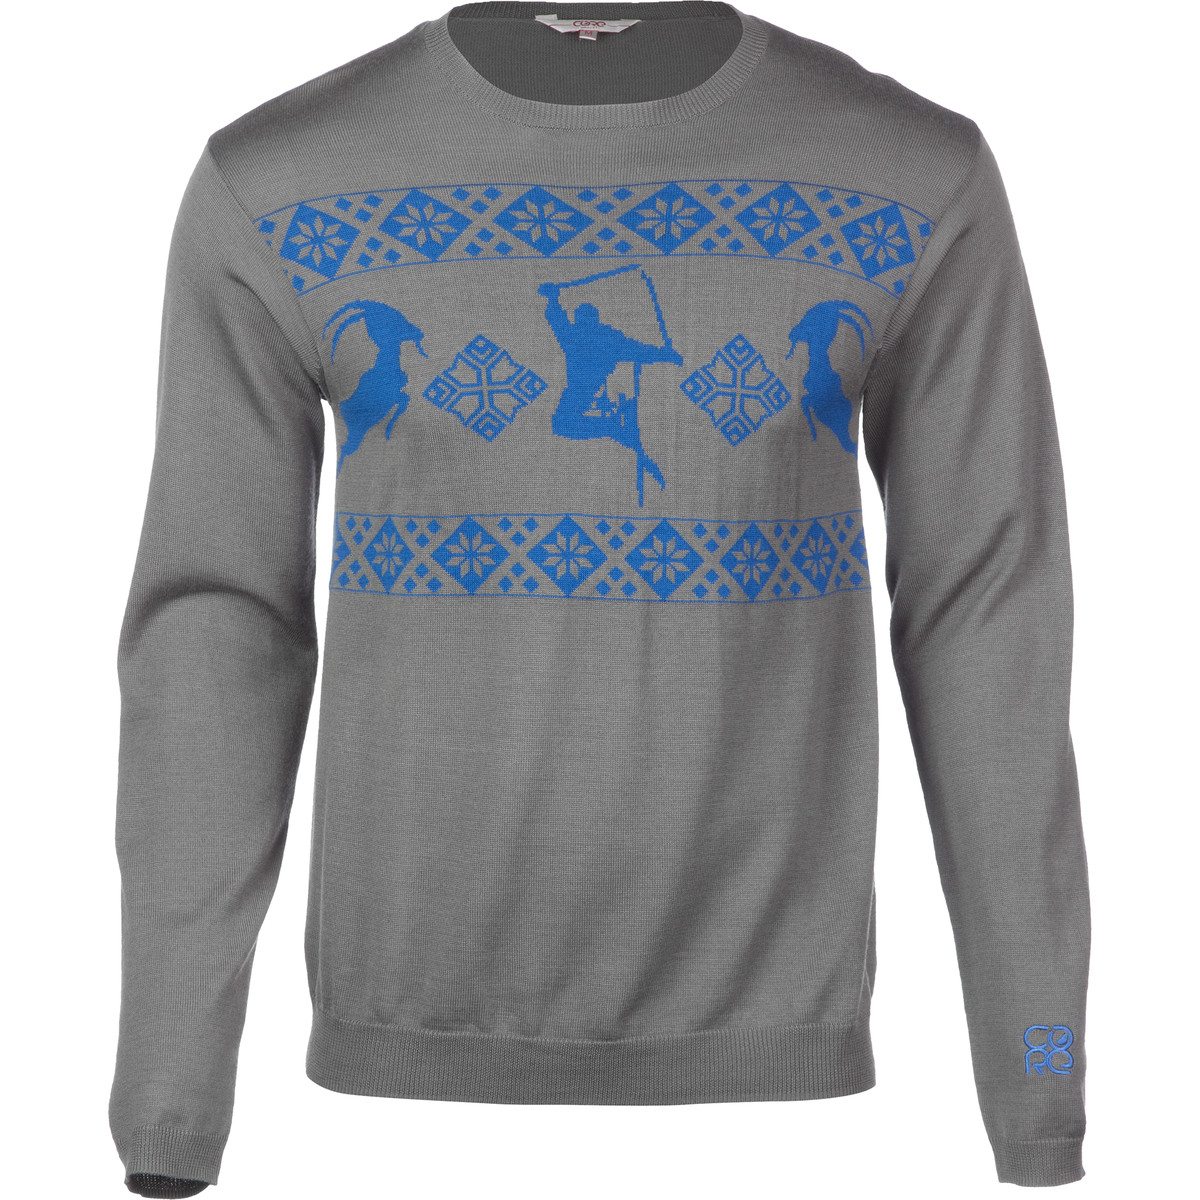 Backcountry.com Goatski Collab Merino-Blend Sweater